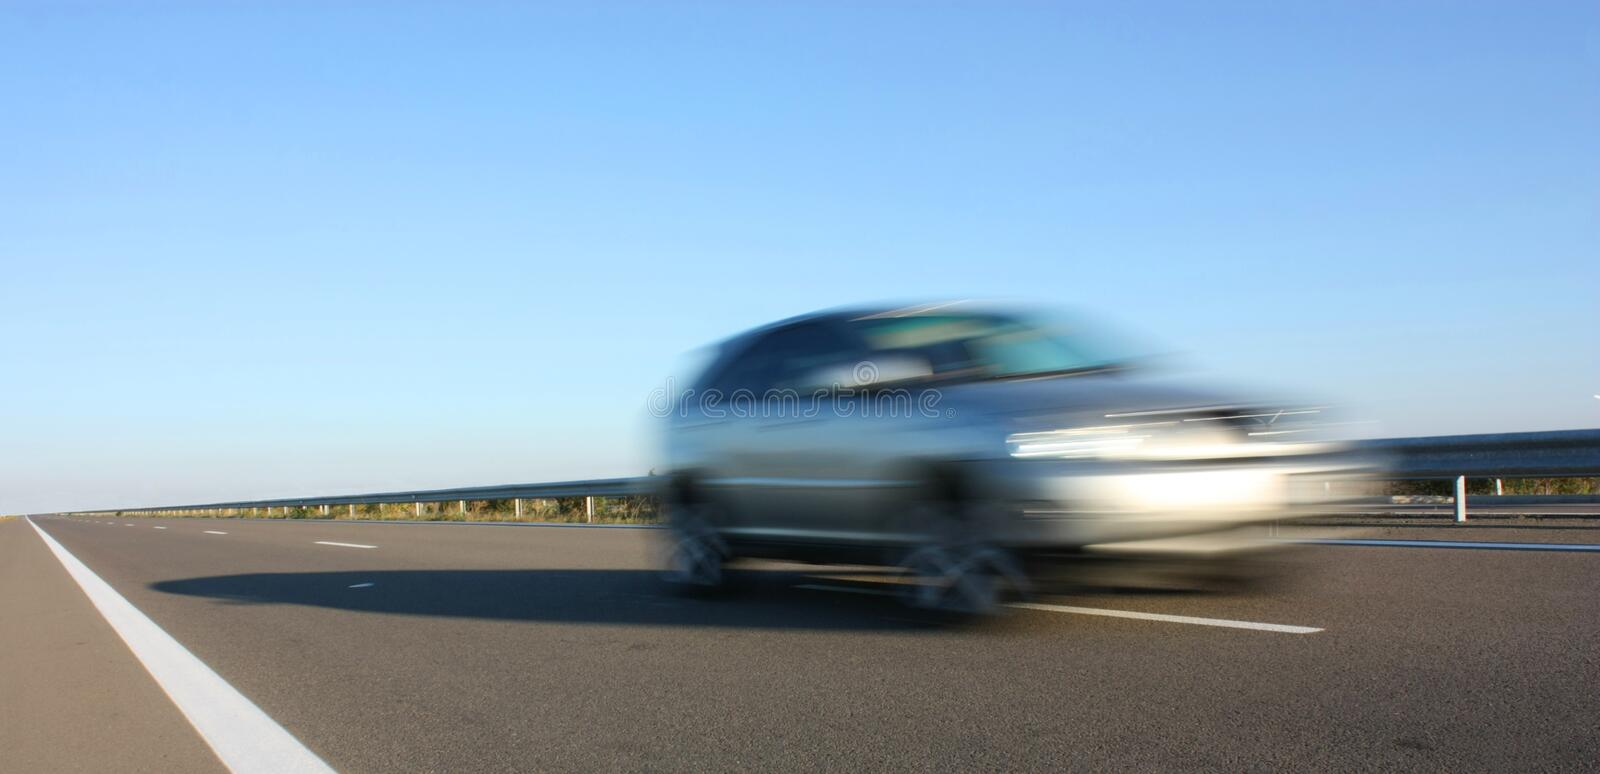 A car on a highway. A fast car on a highway movement stock image